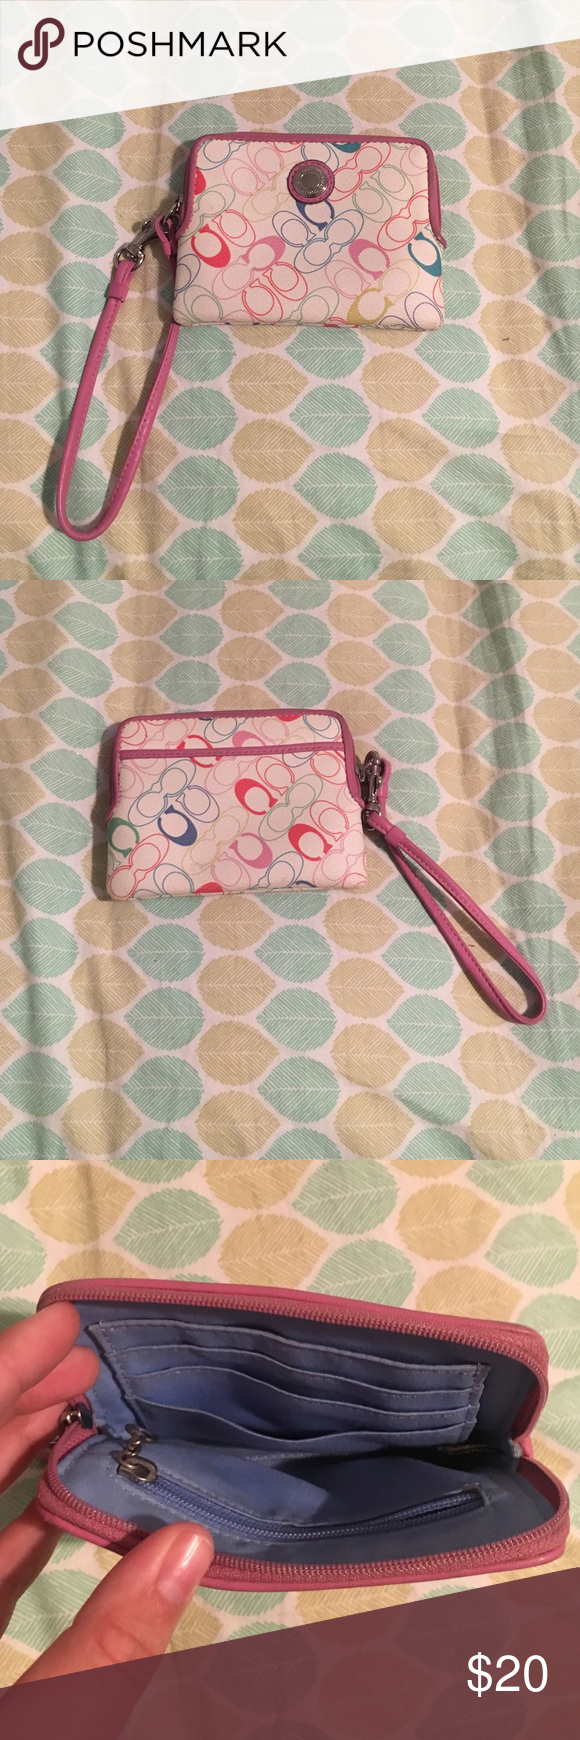 Coach wristlet This coach wristlet is in great condition and has only been used a few times! It is great for a young teen or a mother wanting to switch it up for summer ! Coach Bags Clutches & Wristlets